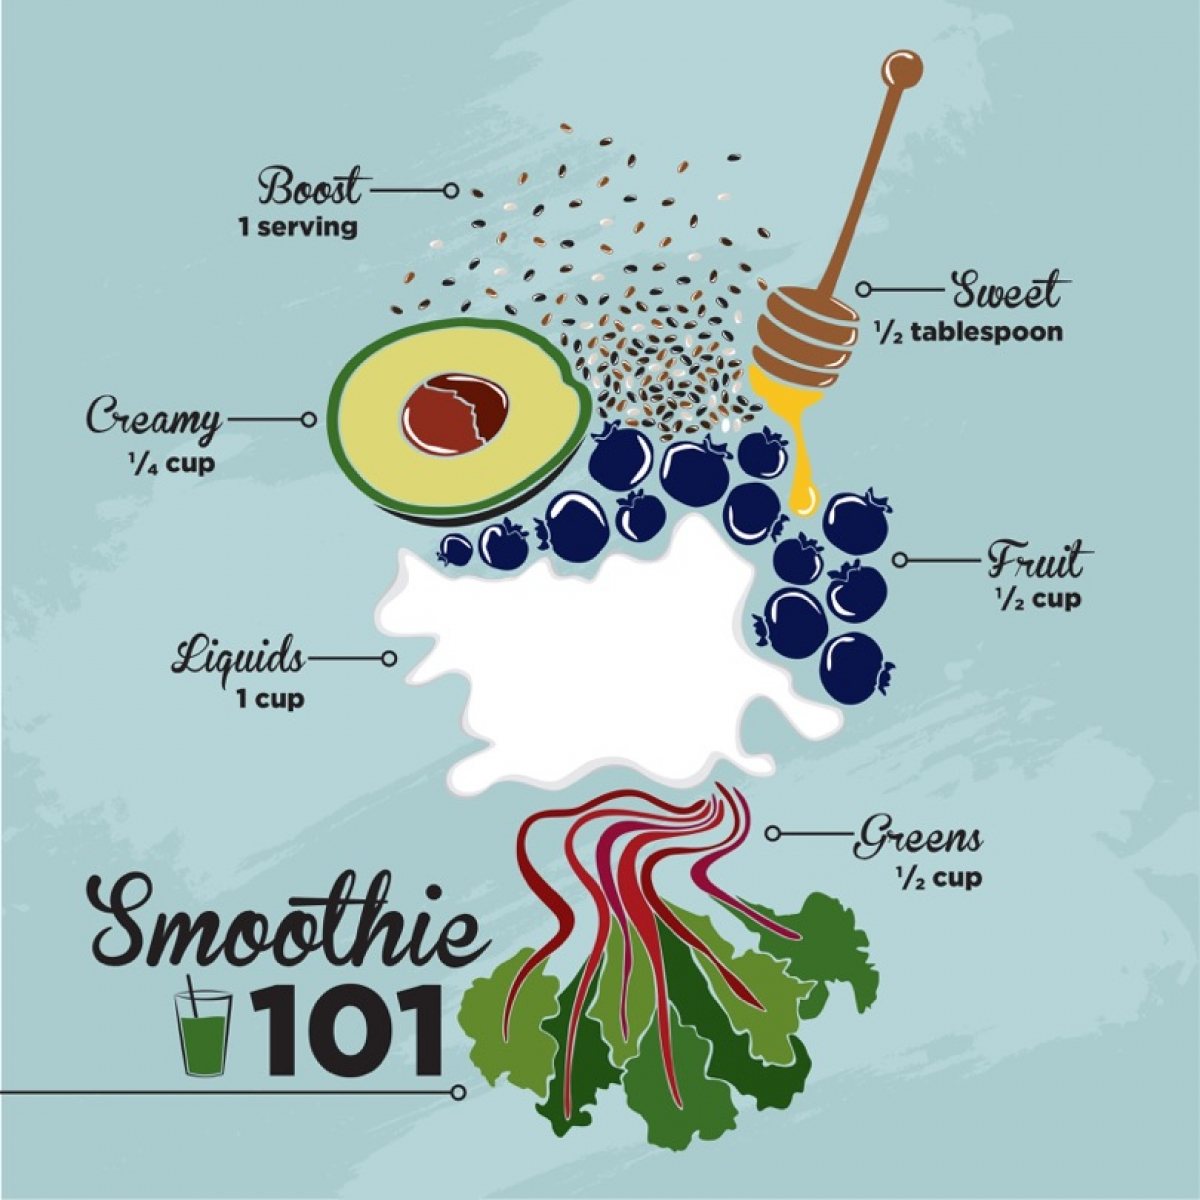 Smoothie 101 infographic